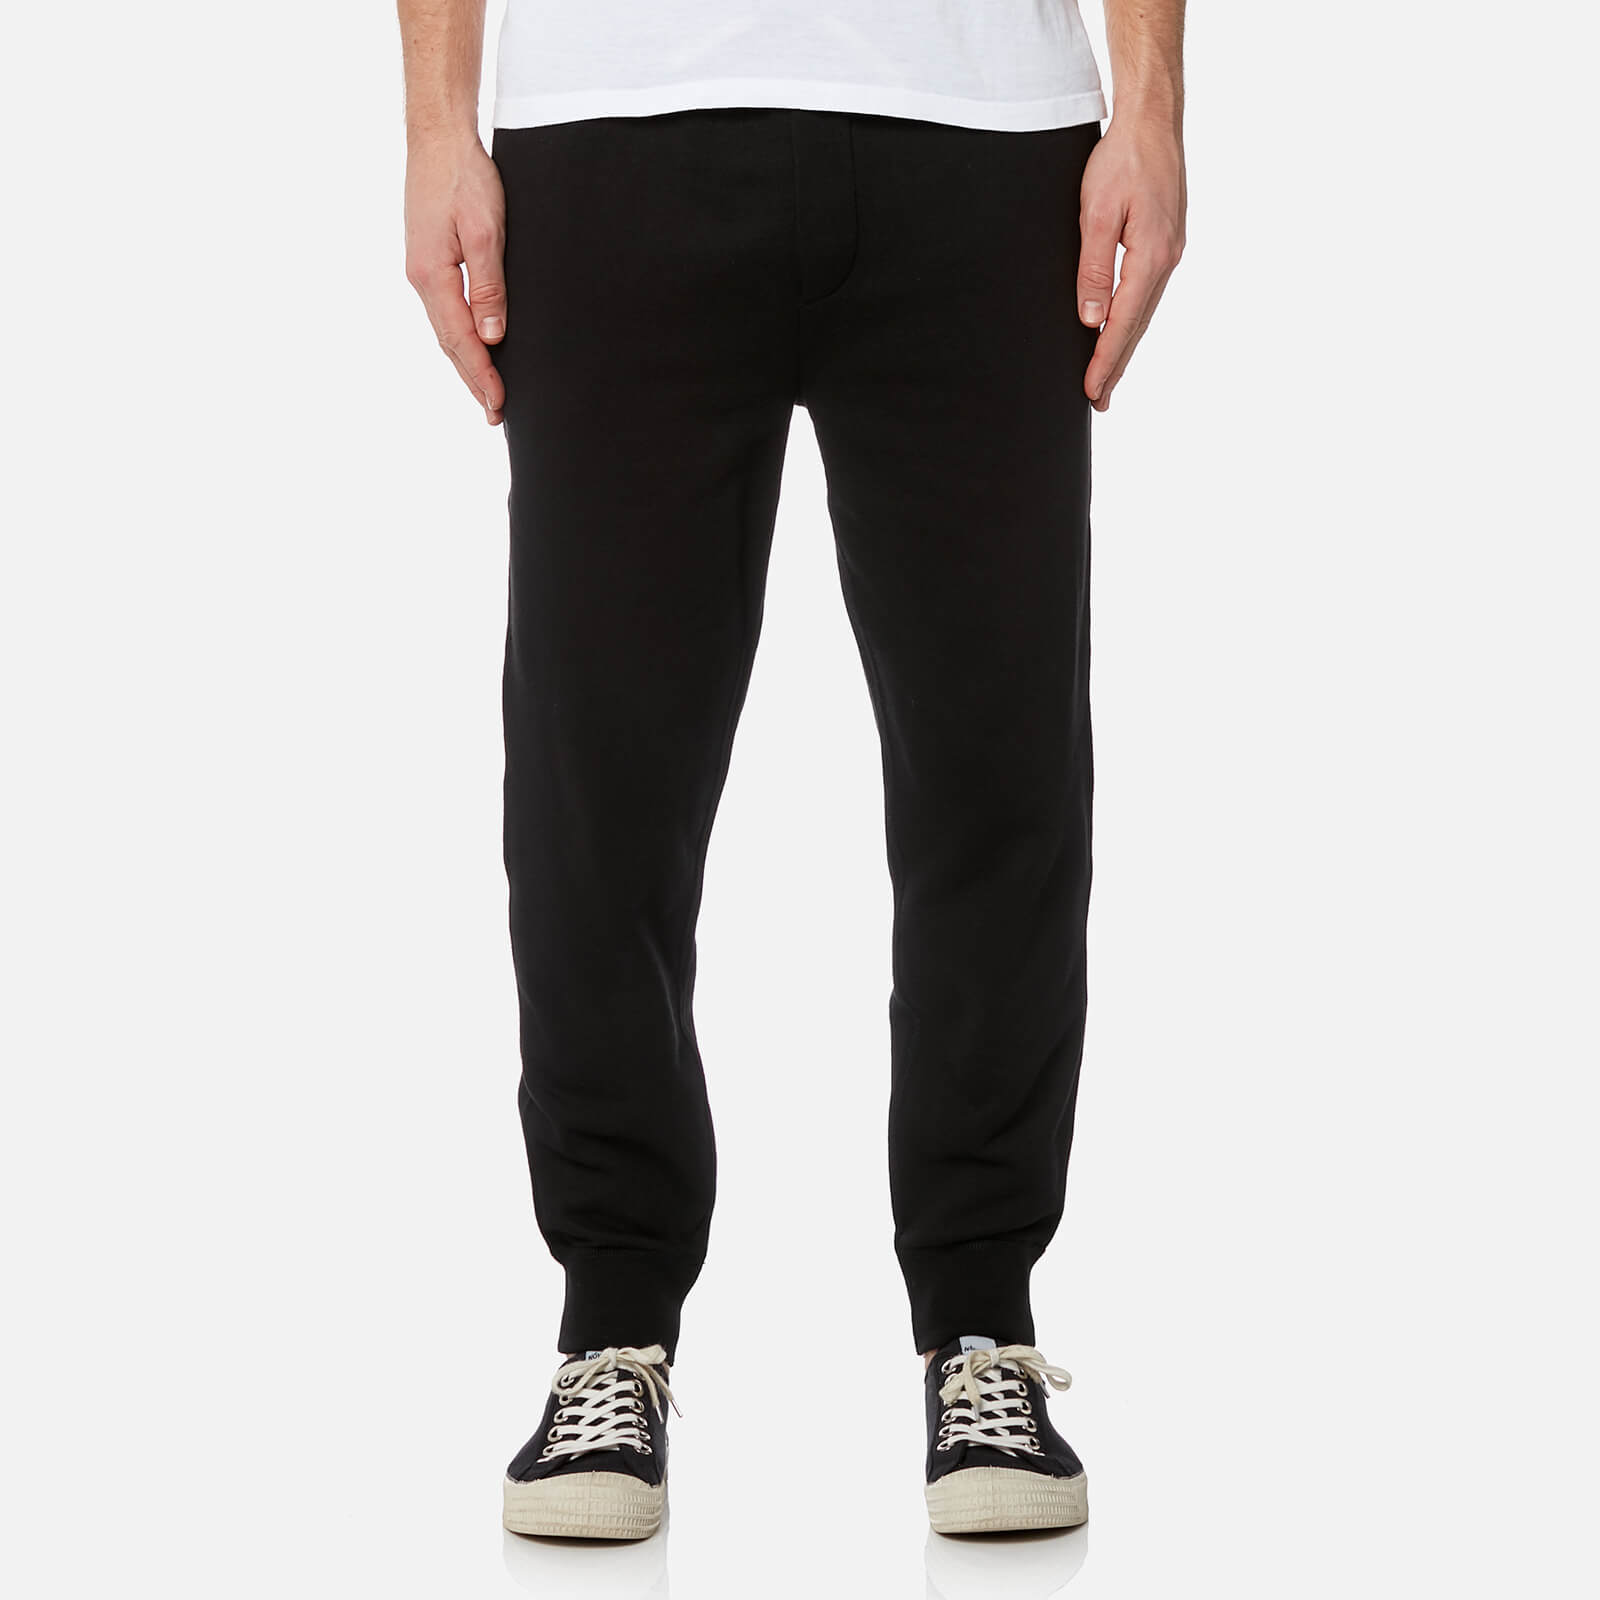 97402968f Polo Ralph Lauren Men s Rib Cuff Pants - Polo Black - Free UK Delivery over  £50